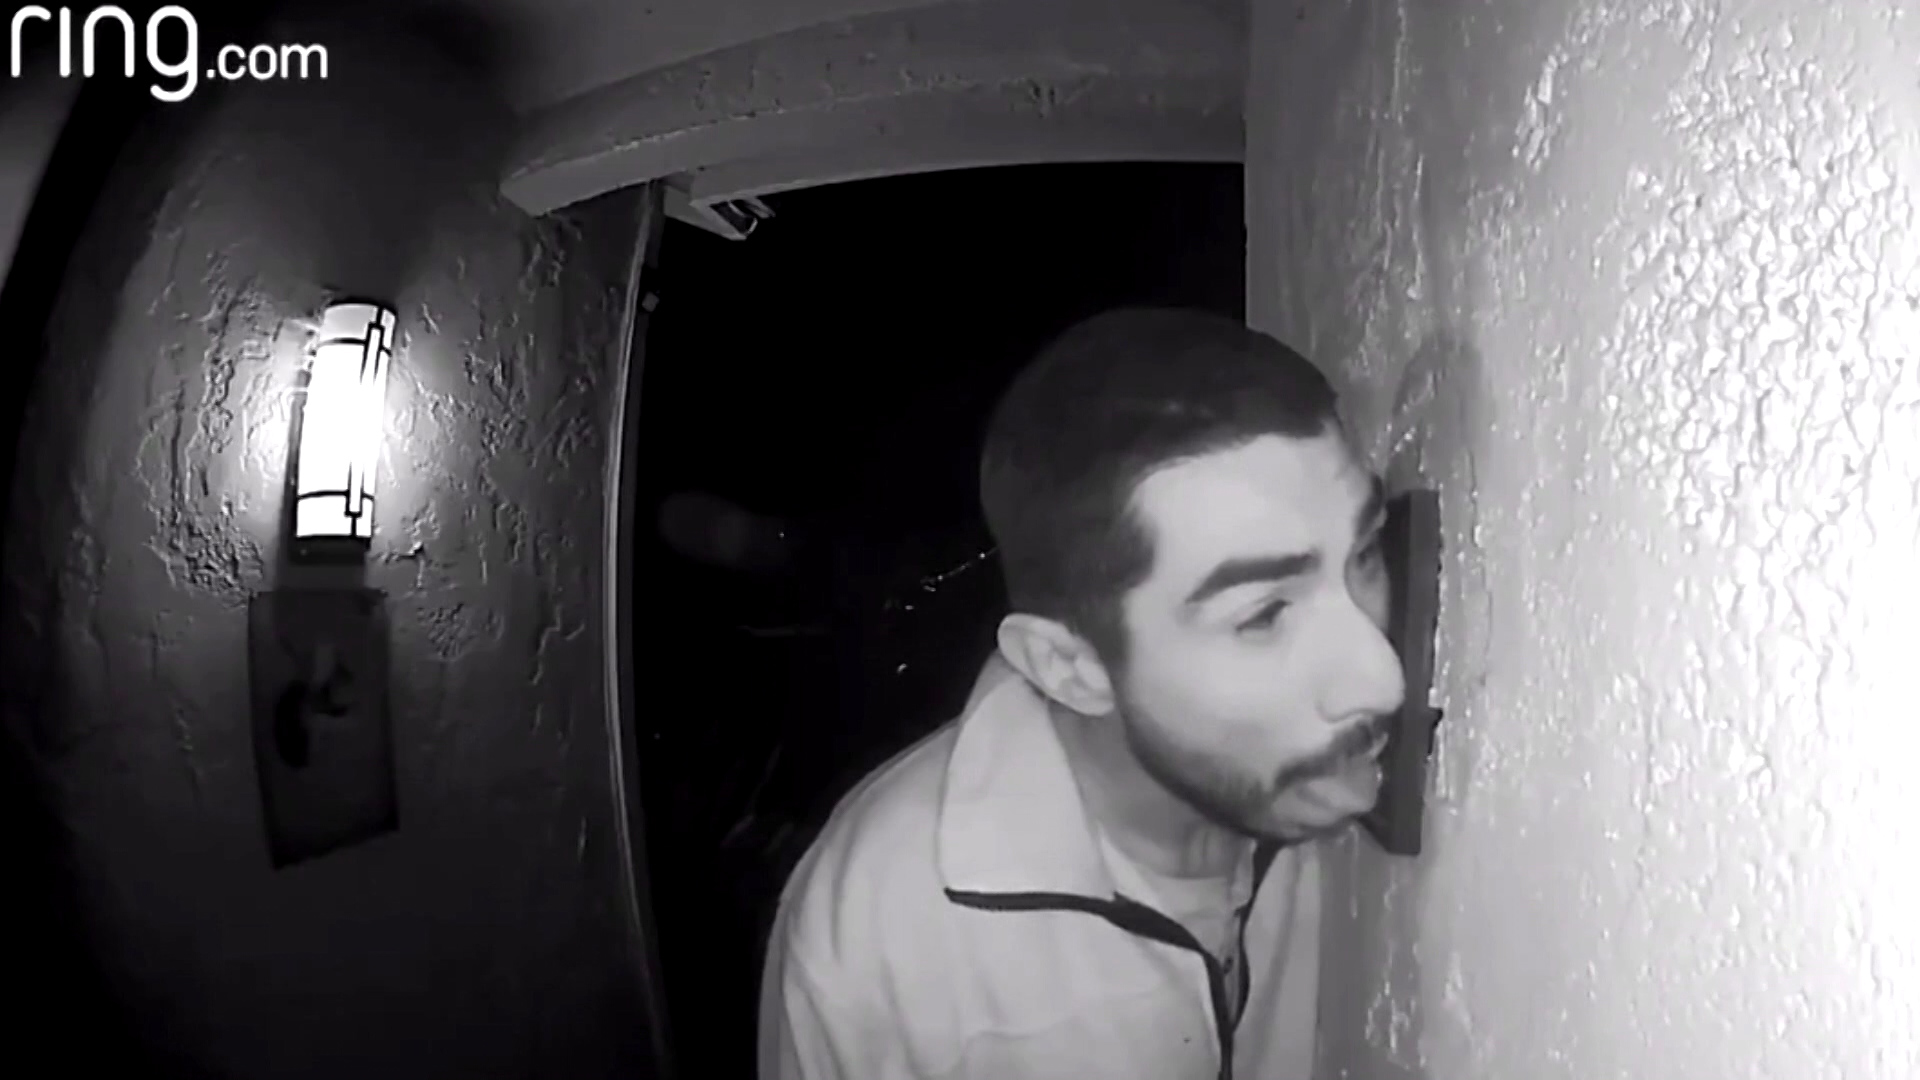 Family's unnerving find on security camera outside front door